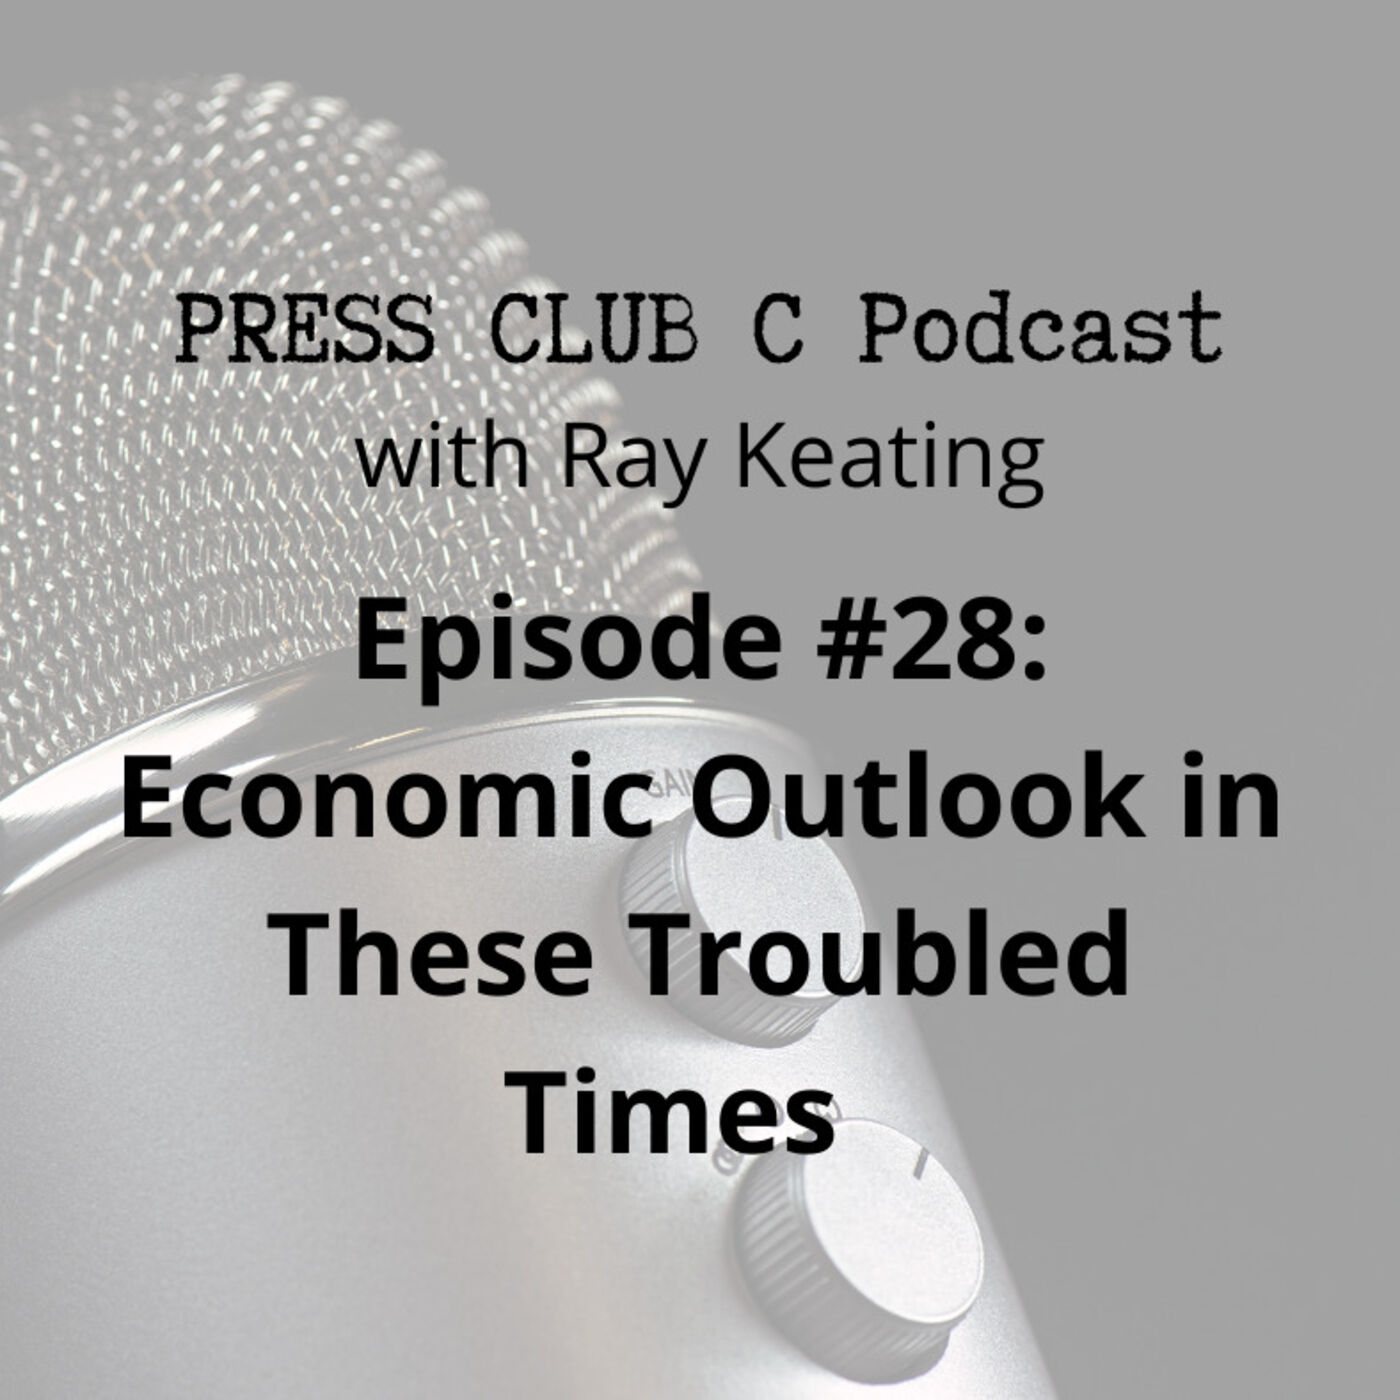 Episode #28: Economic Outlook in These Troubled Times